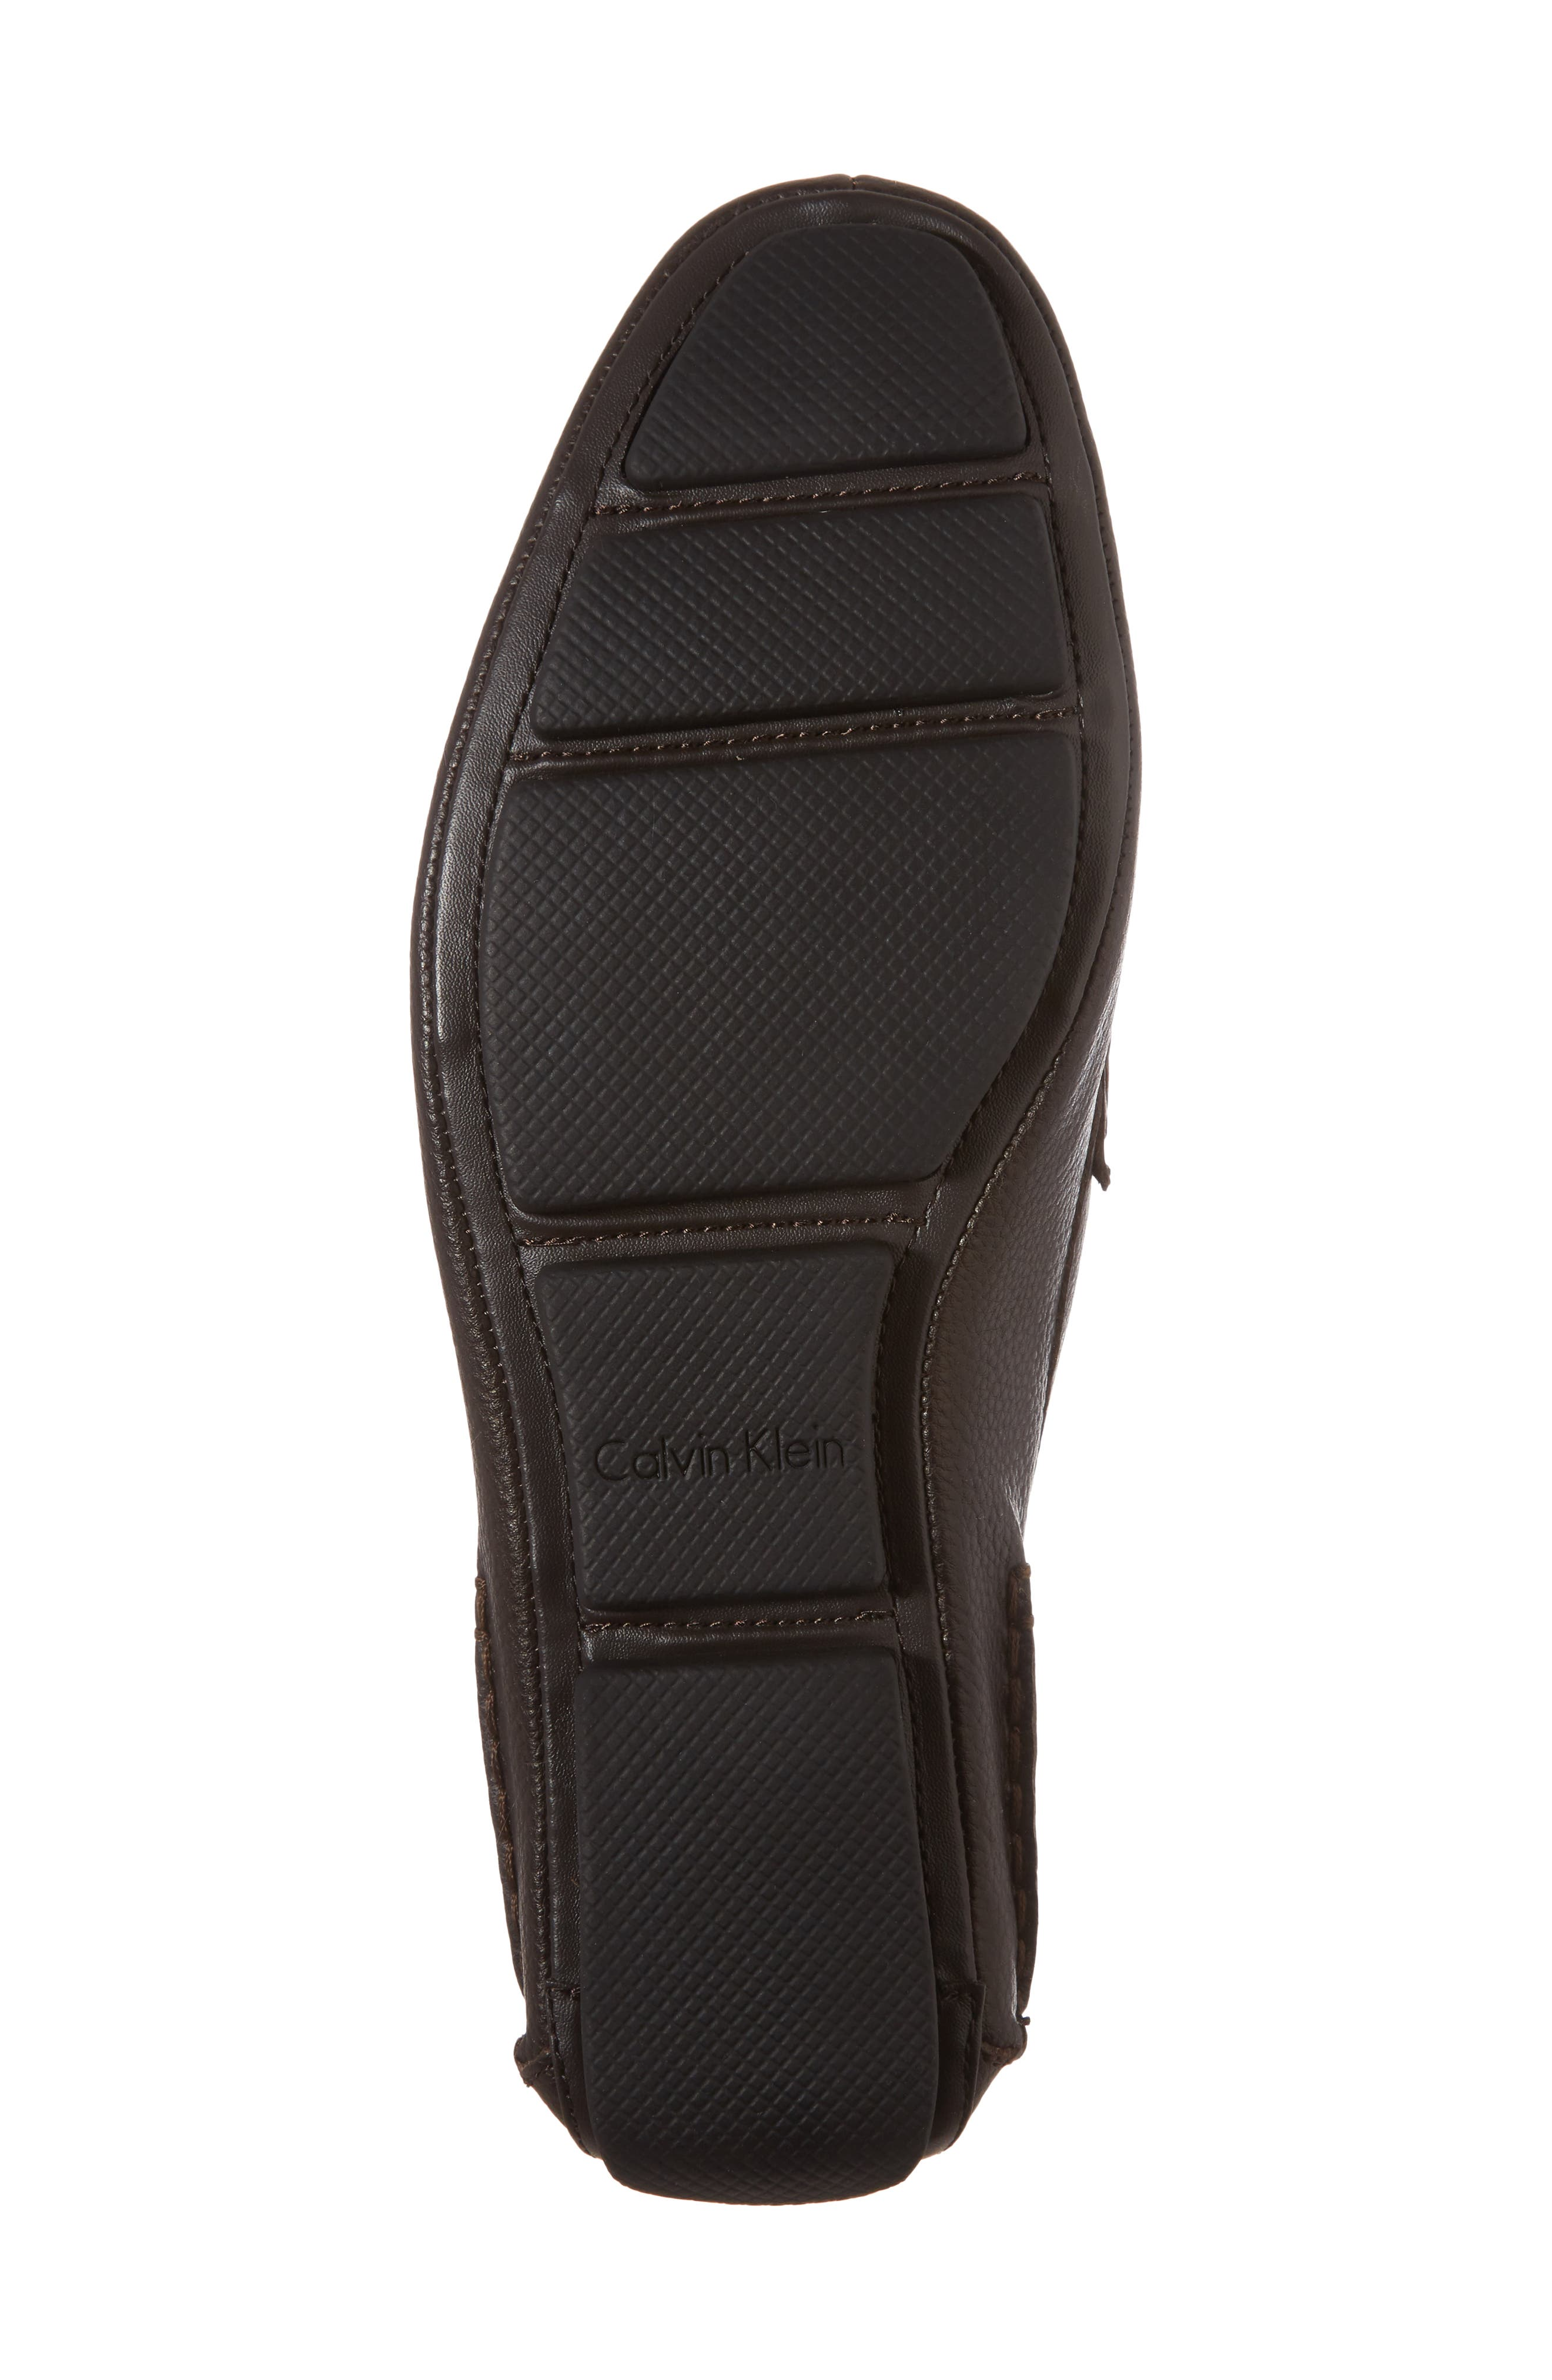 Mikos Driving Shoe,                             Alternate thumbnail 6, color,                             Dark Brown Leather